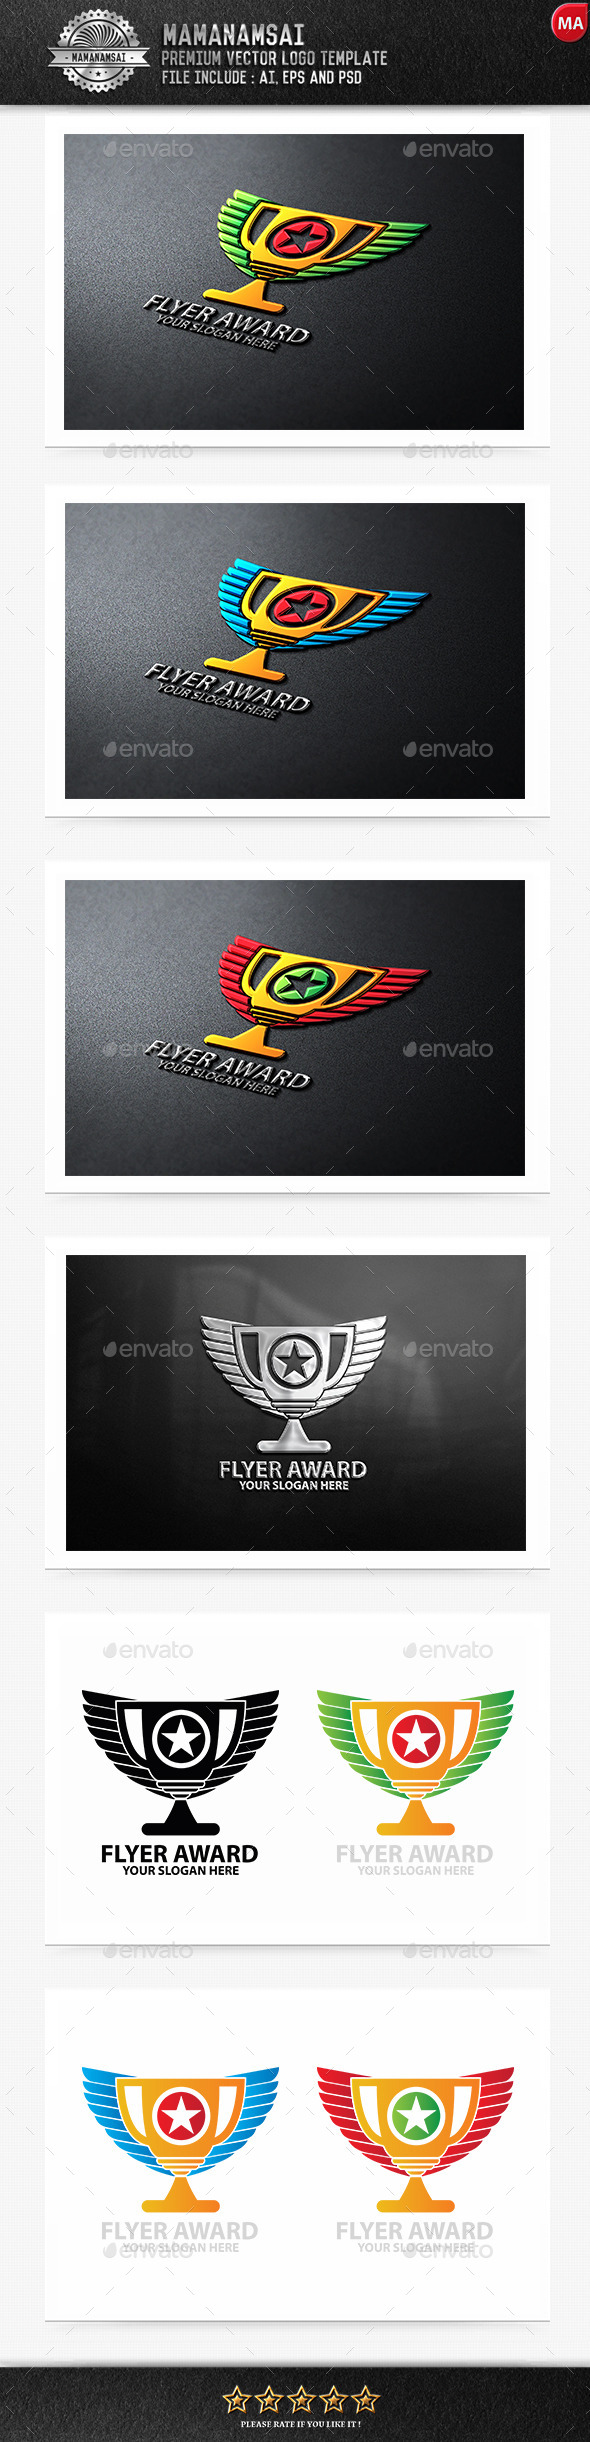 Flyer Award Logo - Logo Templates